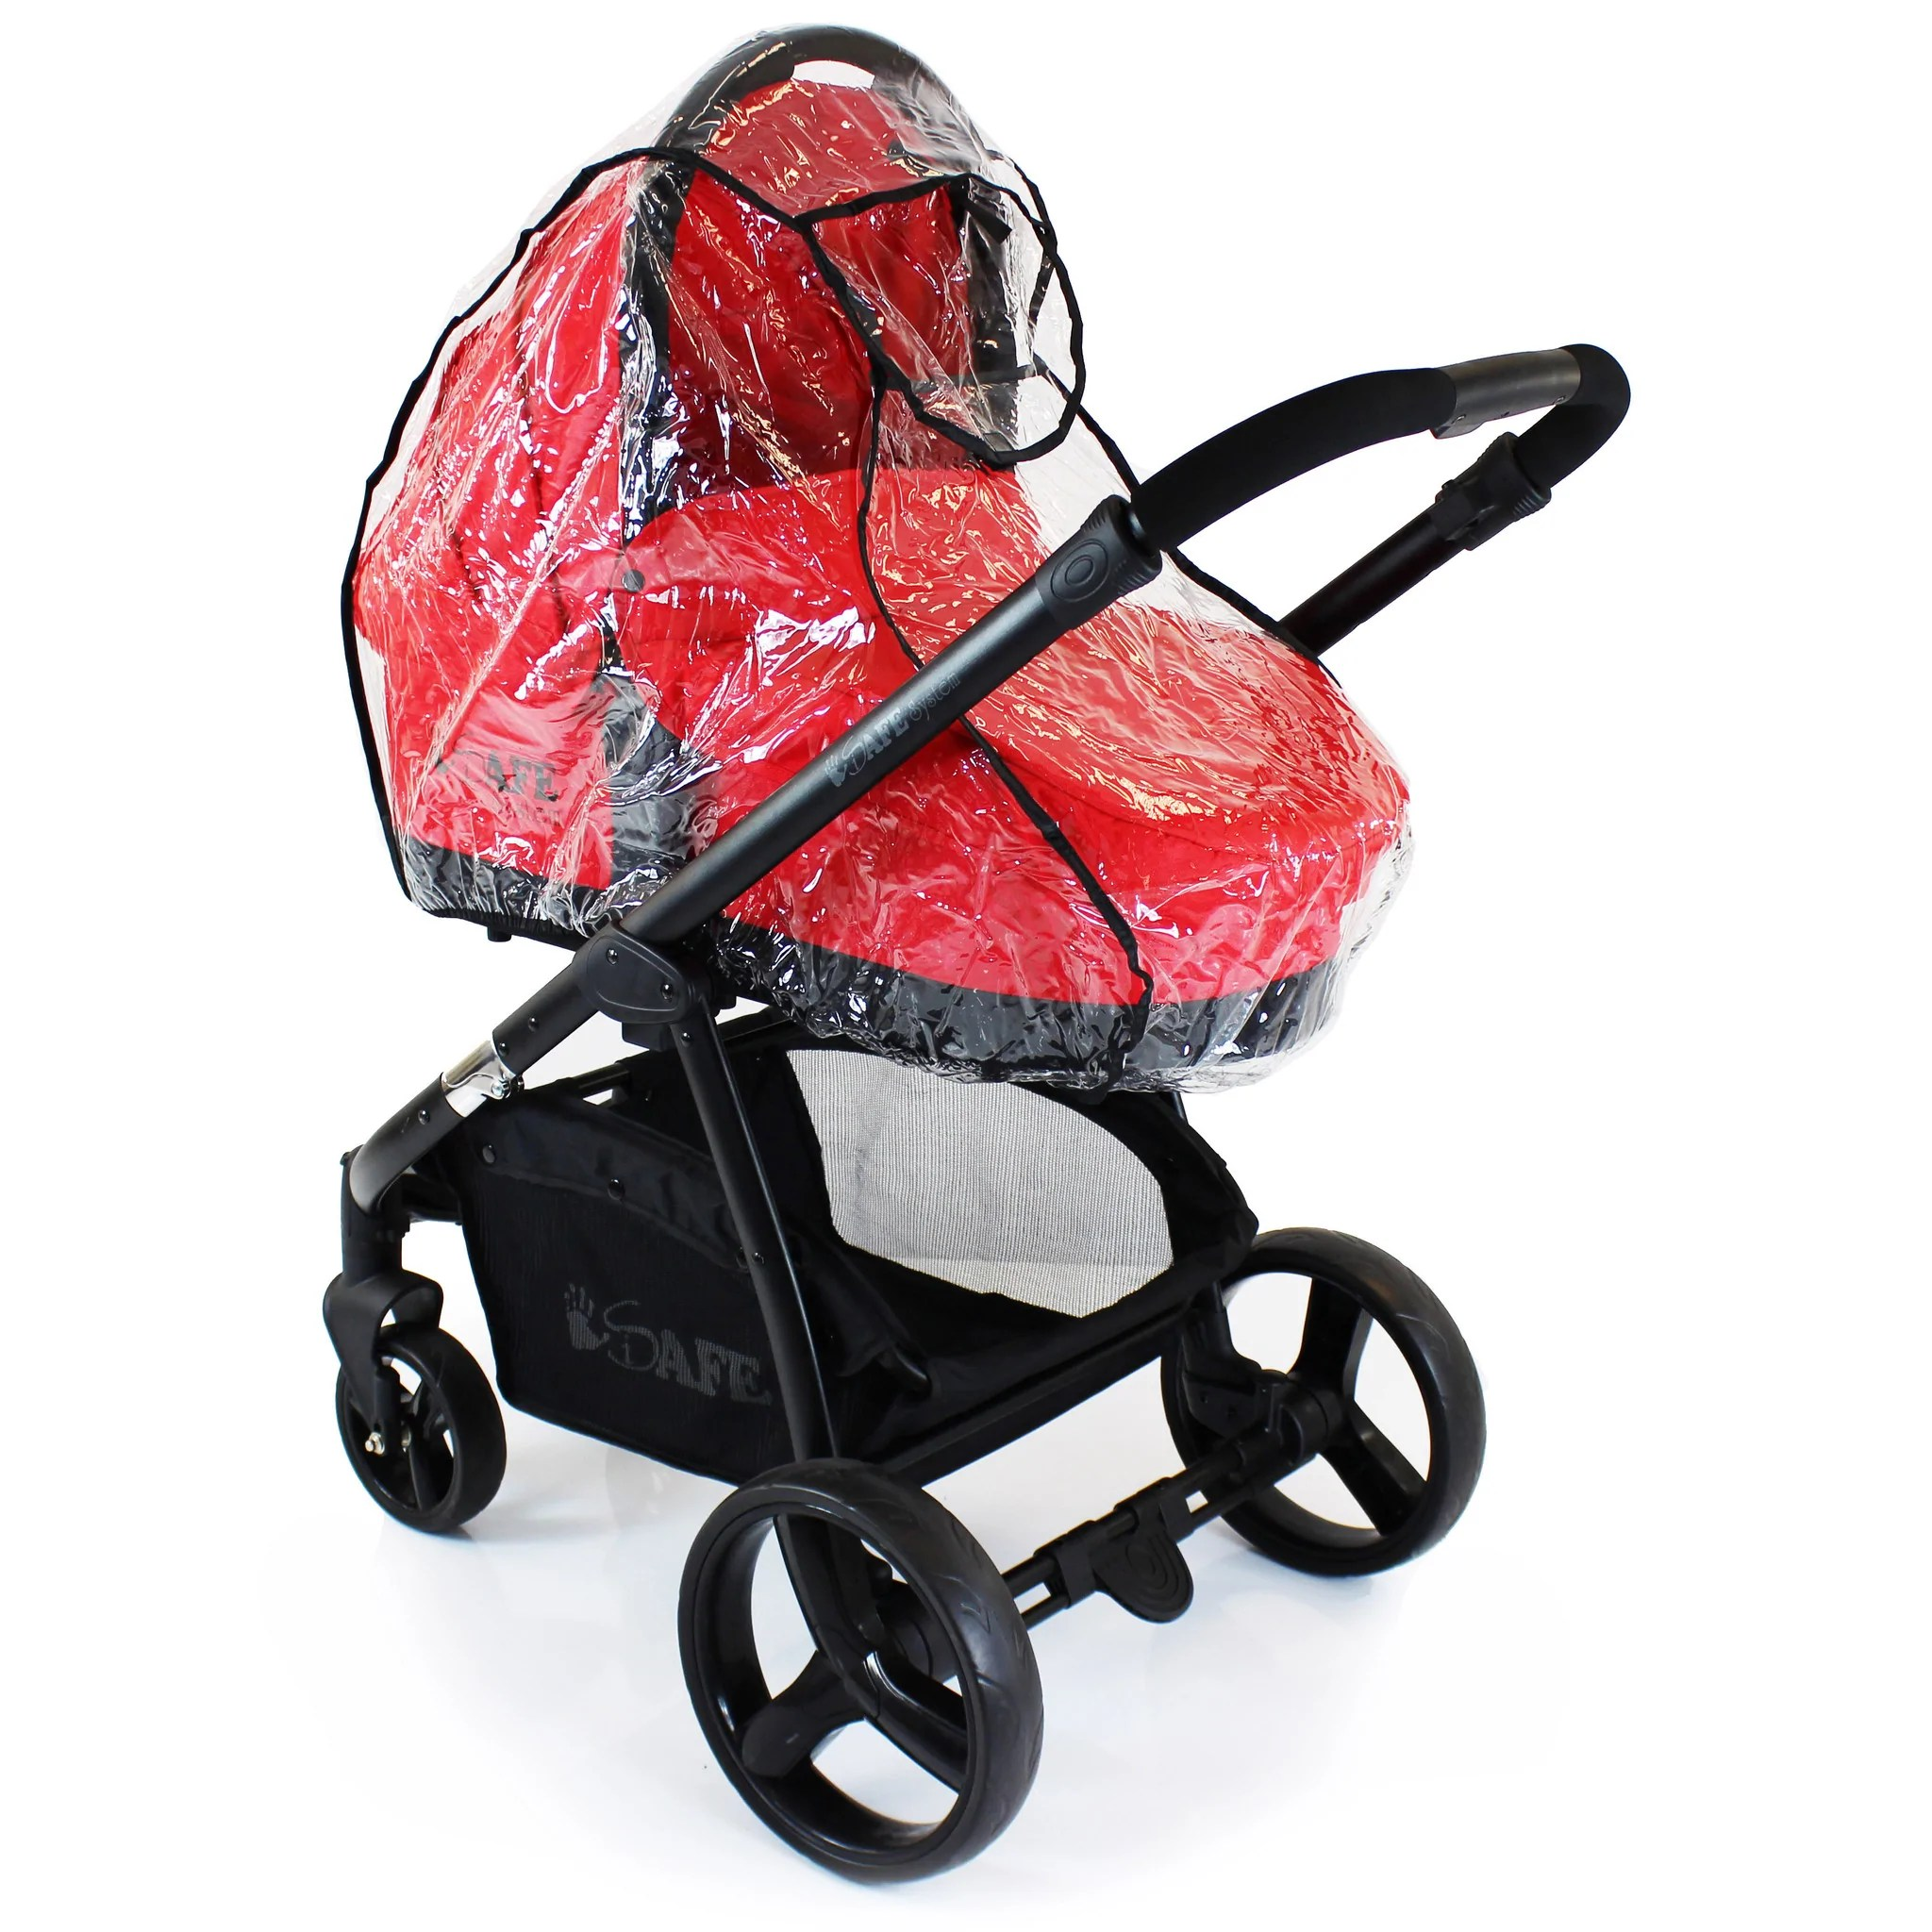 Graco Twin Buggy Reviews Welcome To Baby Travel Ltd Exclusive British Designer And